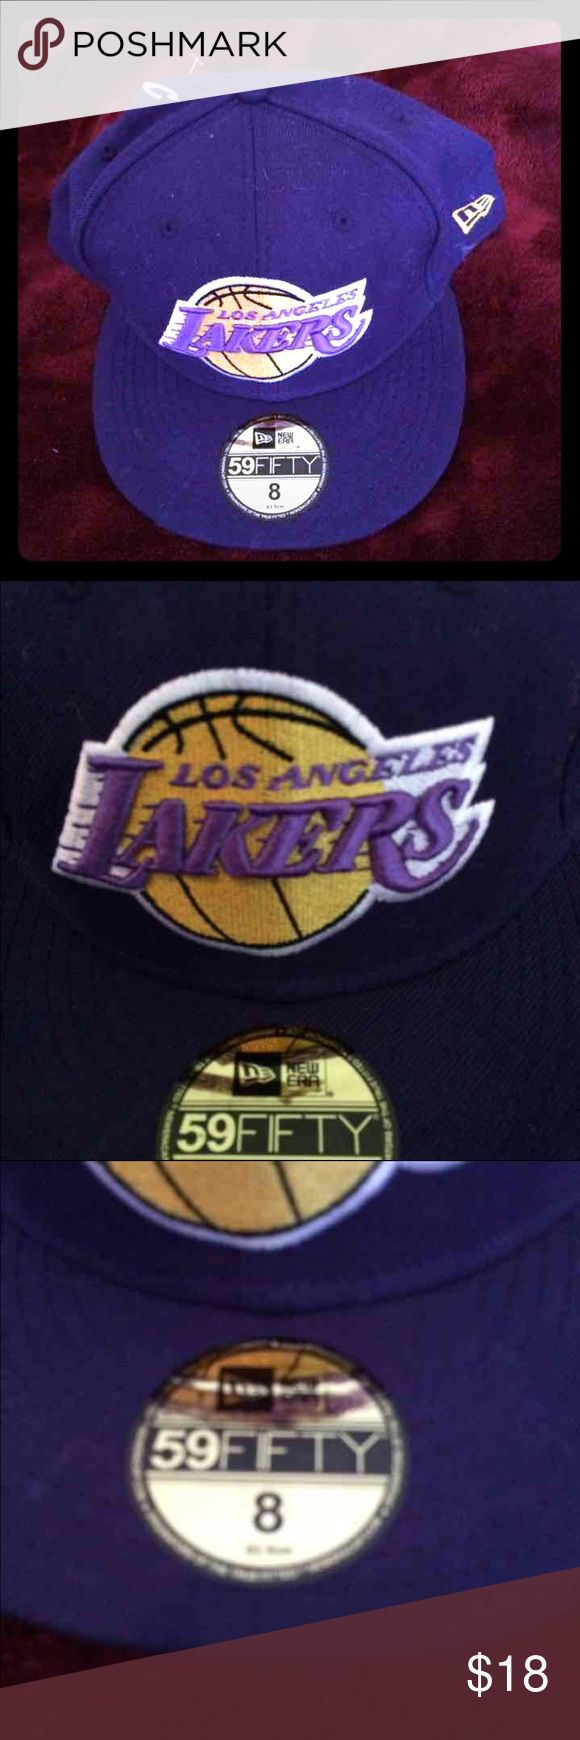 Lakers Los Angeles NEW hat size 8. New 69 era hat Lakers Los Angeles NEW hat size 8. New 69 era fitted hat. purple with yellow logo. Embroided Lakers logo in the back. 100% authentic. 100% wool. Accessories Hats